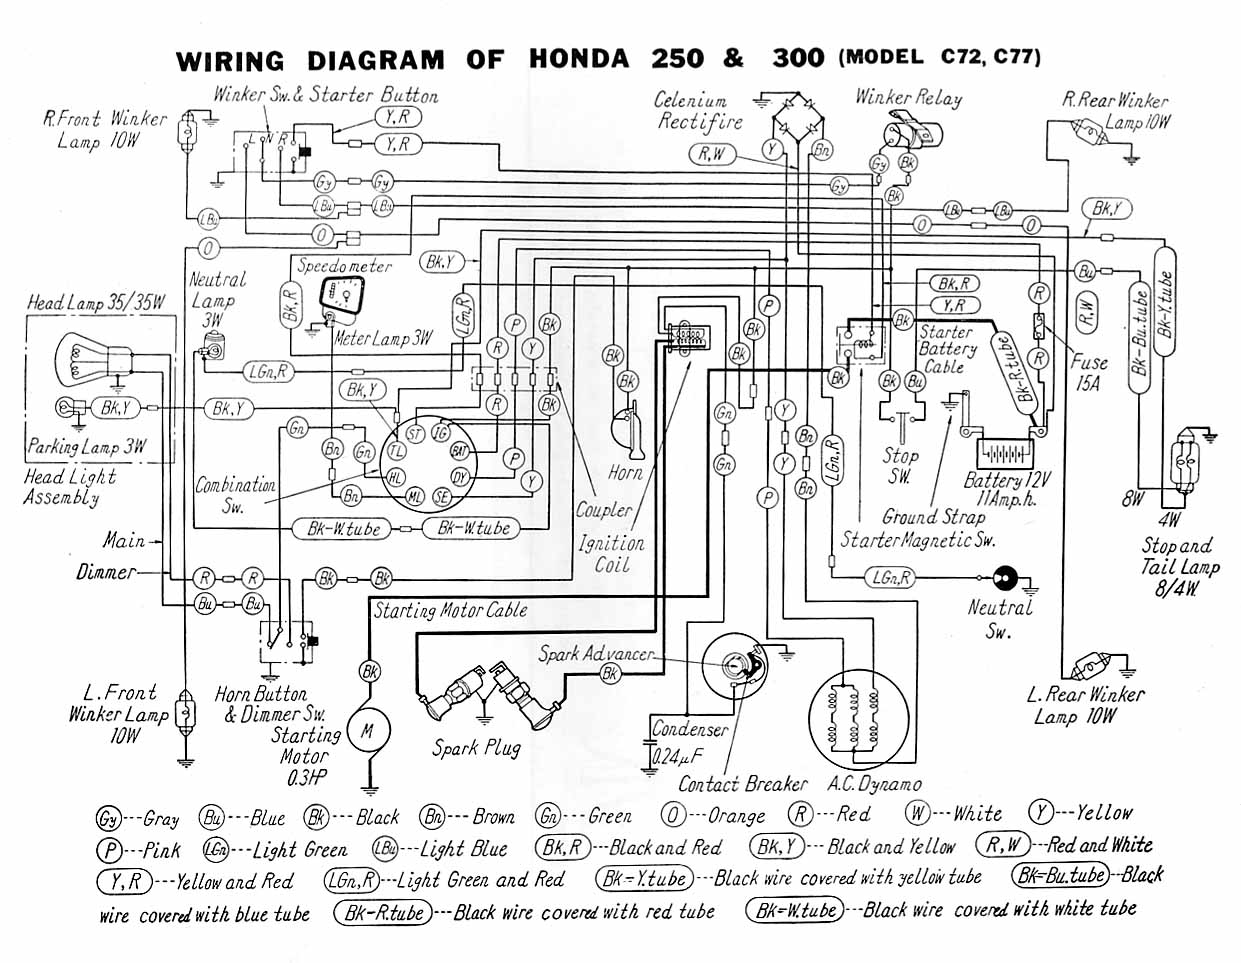 Suzuki Gt750 Wiring Horn Wire Center Gt550 Diagram Diagrams Rh Oregonmotorcycleparts Com 1974 Motorcycles